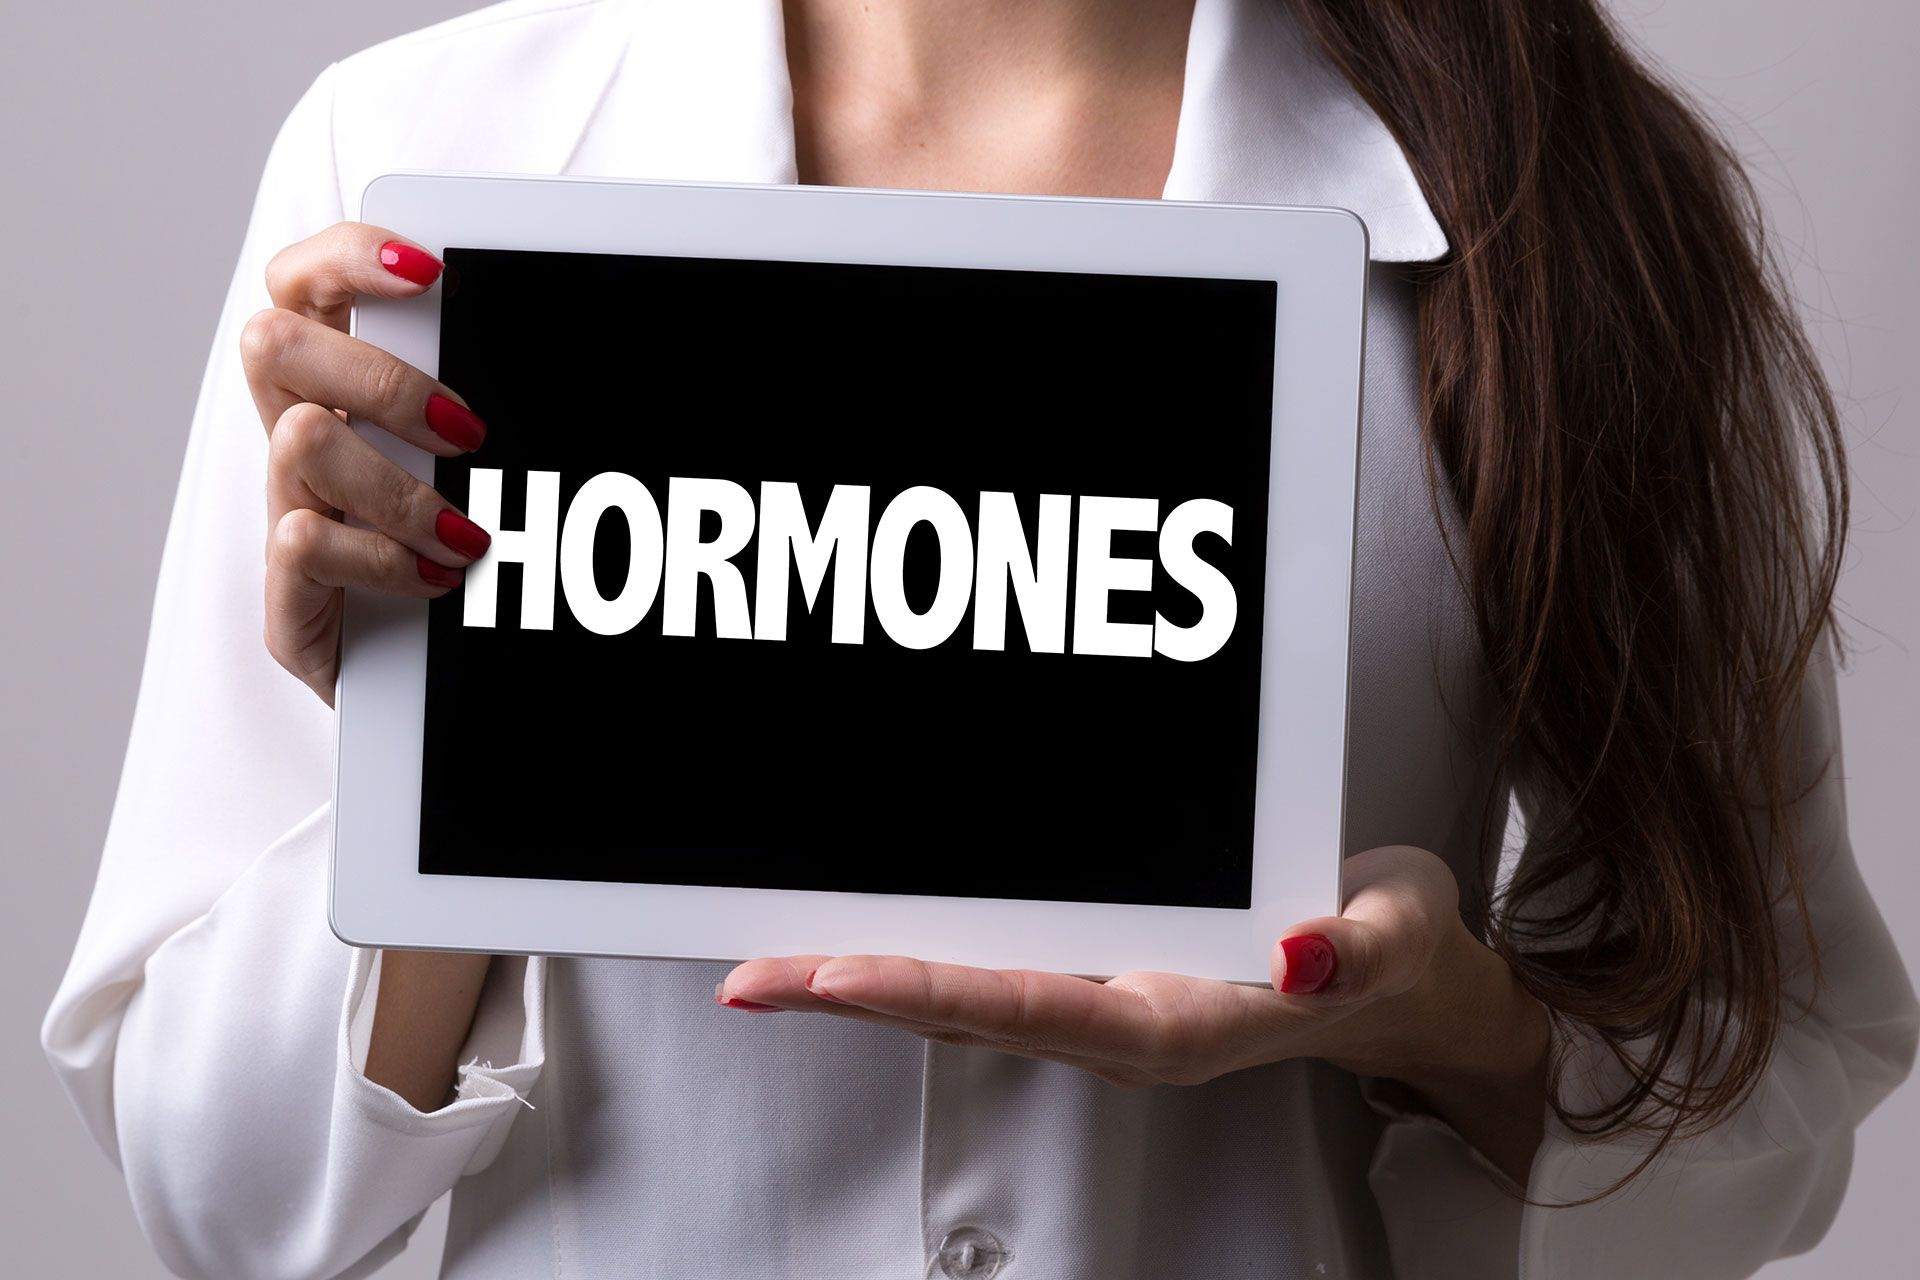 Does HCG Hormone Treatment Help With Weight Loss?